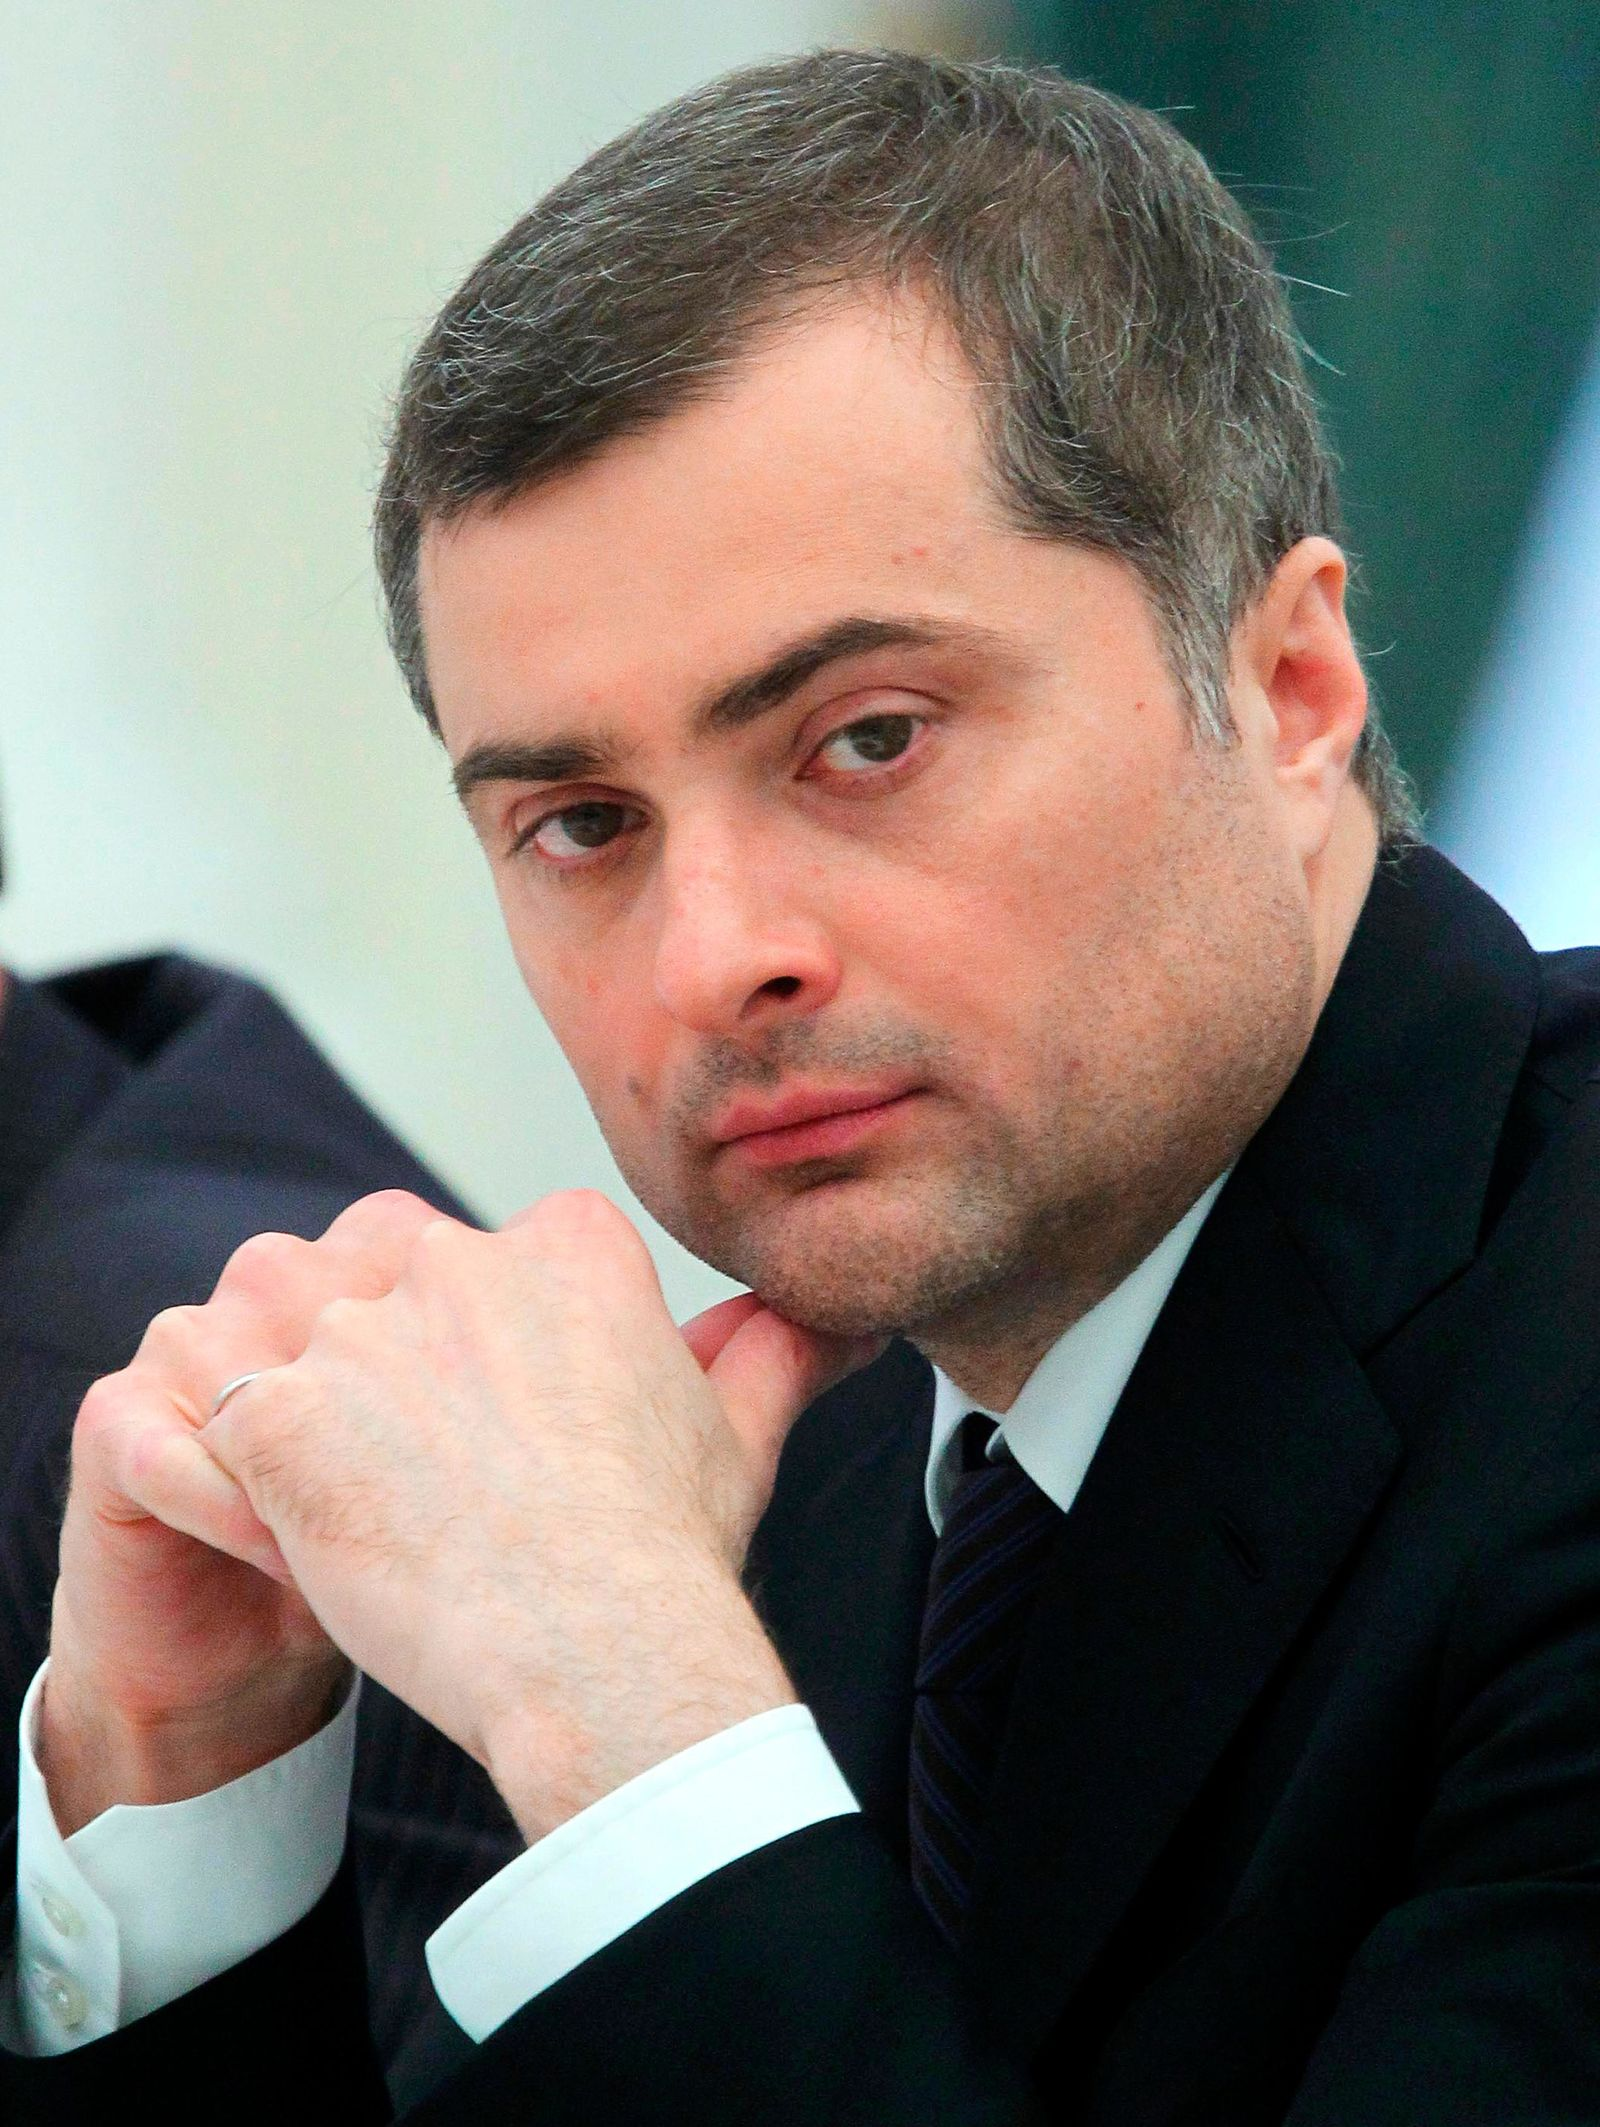 FILE - In this Wednesday, May 8, 2013 file photo Vladislav Surkov, an adviser to Russian President Vladimir Putin listens, during a meeting in Moscow, Russia.{ } (Mikhail Klimentyev, Sputnik, Kremlin Pool Photo via AP, File)